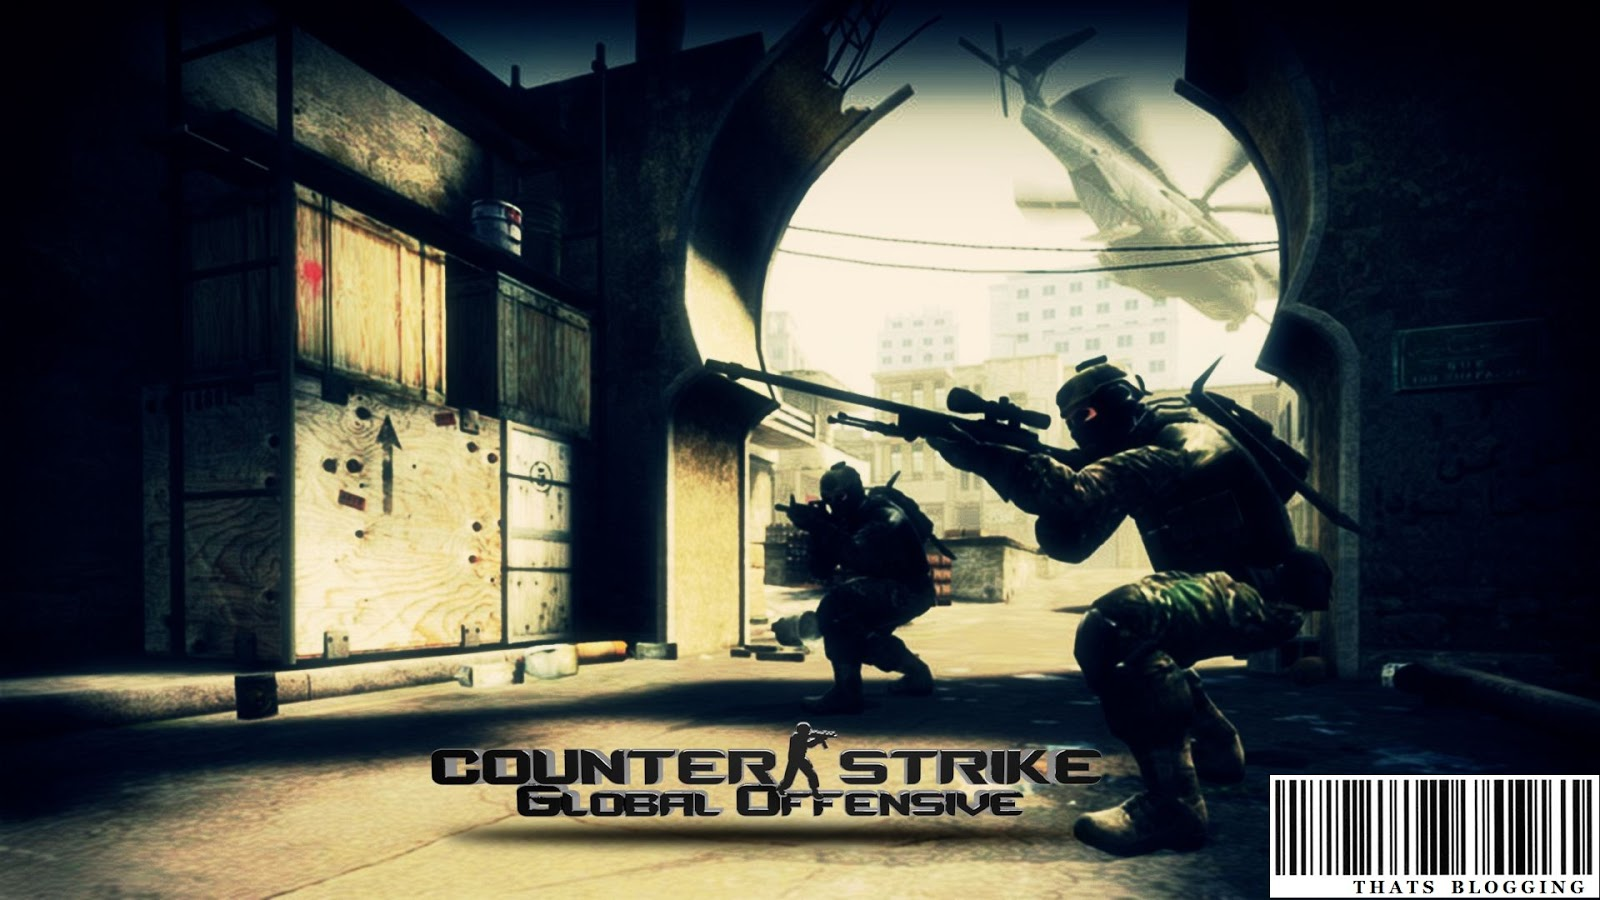 Download counter strike 1 6 high definition wallpapers - Counter strike wallpaper hd ...